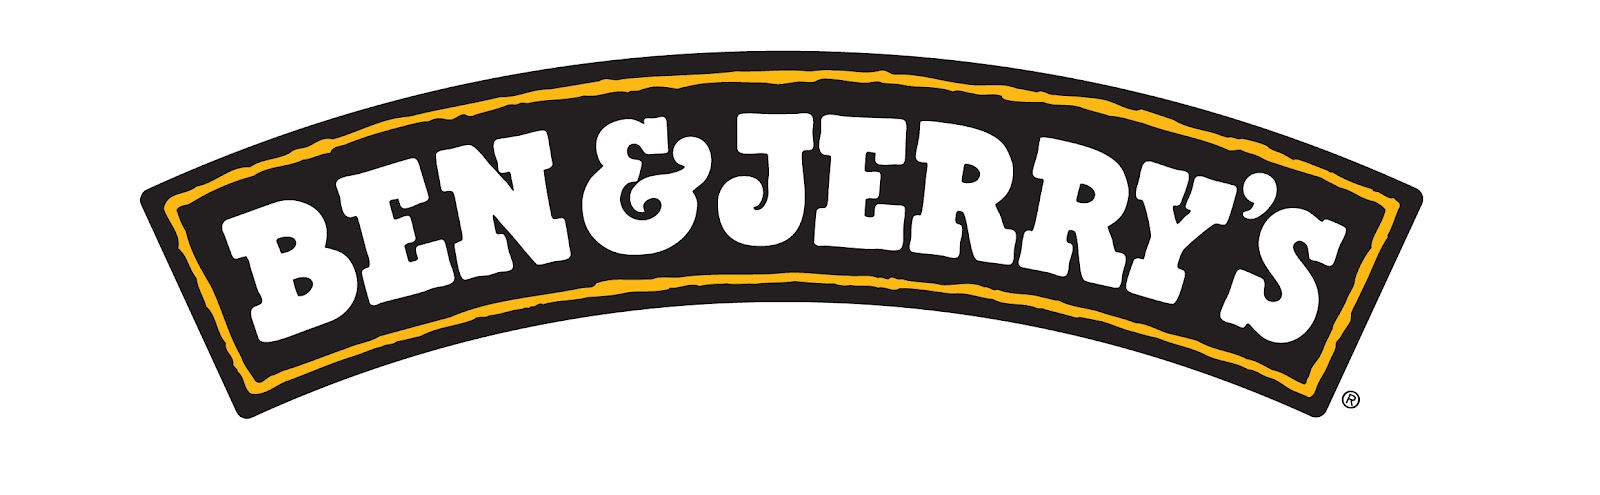 ben and jerrys case study Access to case studies expires six months after purchase date publication date: september 13, 2002 this is a darden case studythis case examines issues of asset control for ben & jerry's.